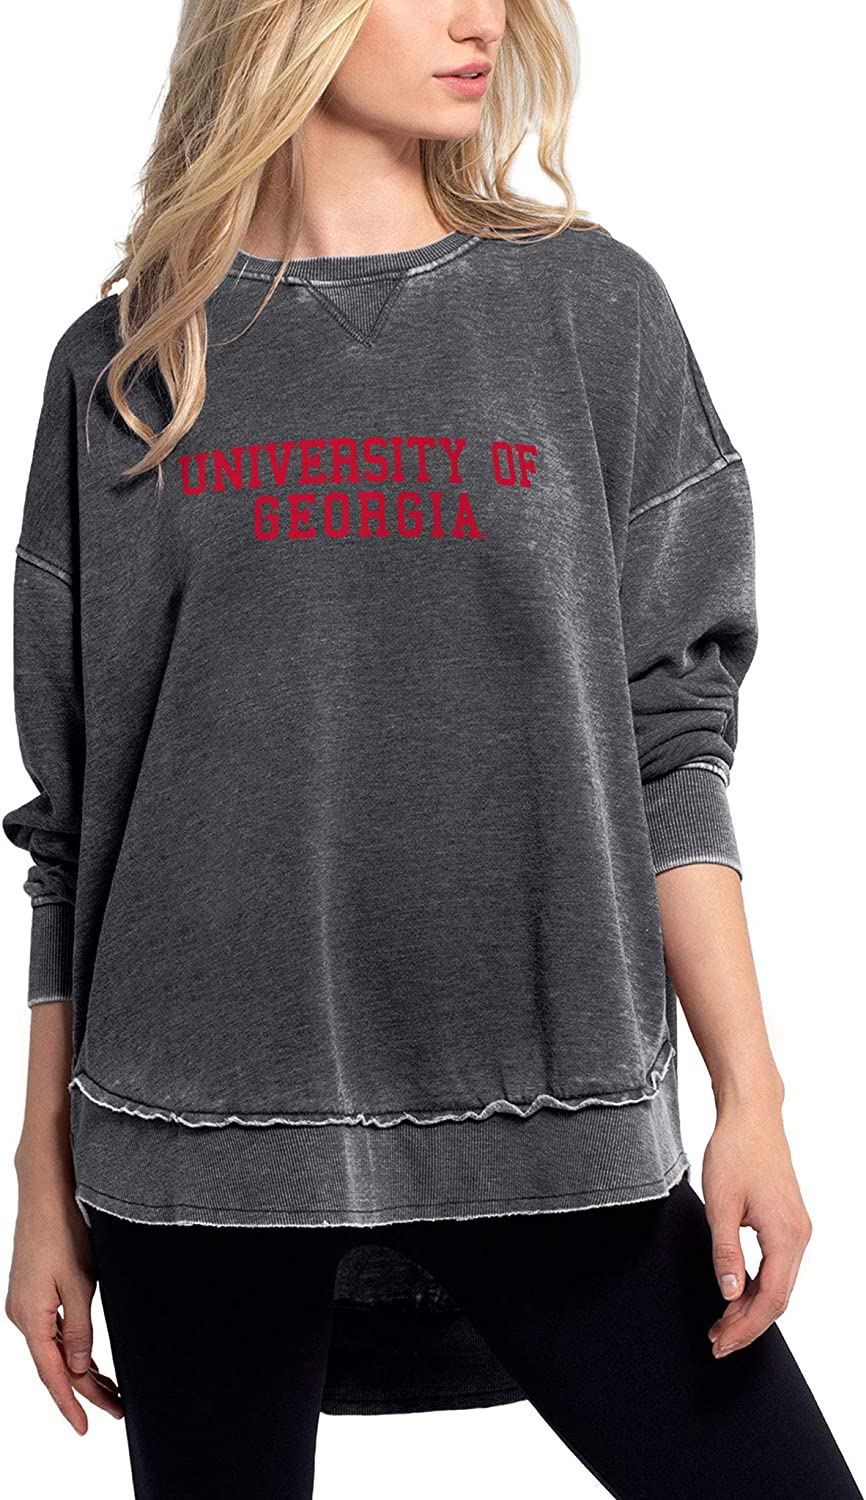 chicka-d NCAA womens Pullover Campus Sweatshirt